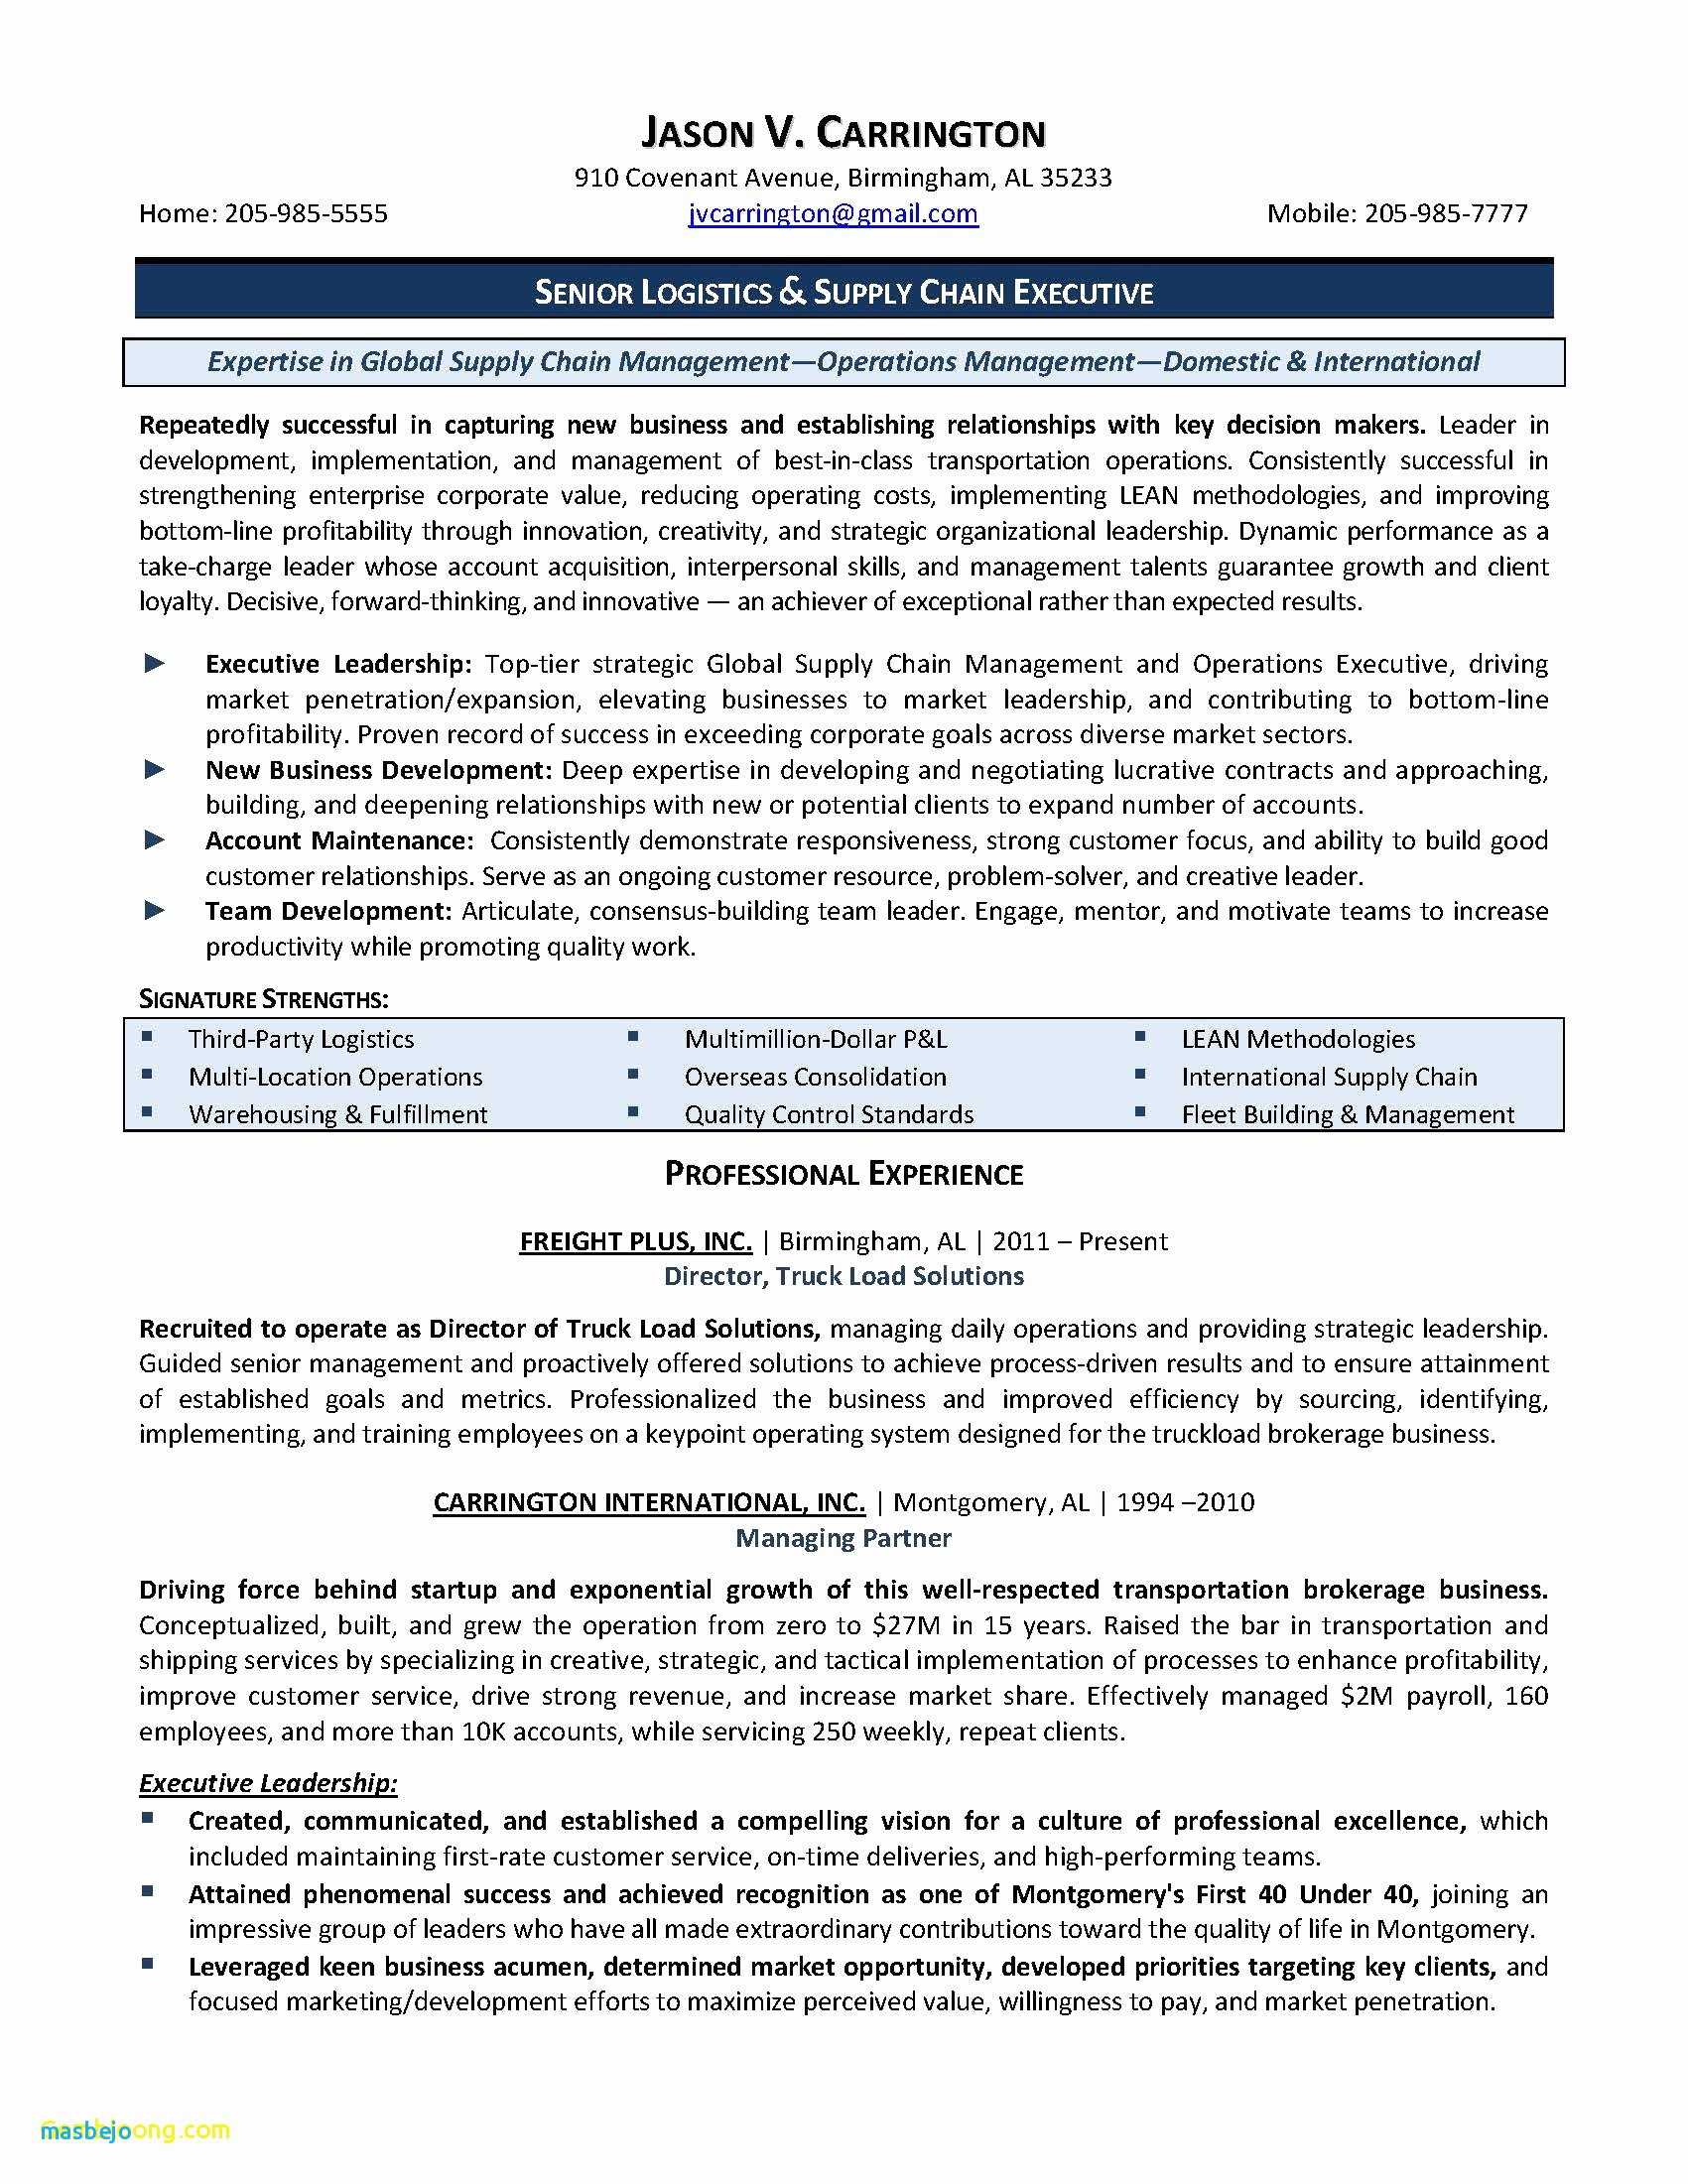 Resume Cv Difference - Senior Executive Resume Examples New Resume Cv Executive Sample